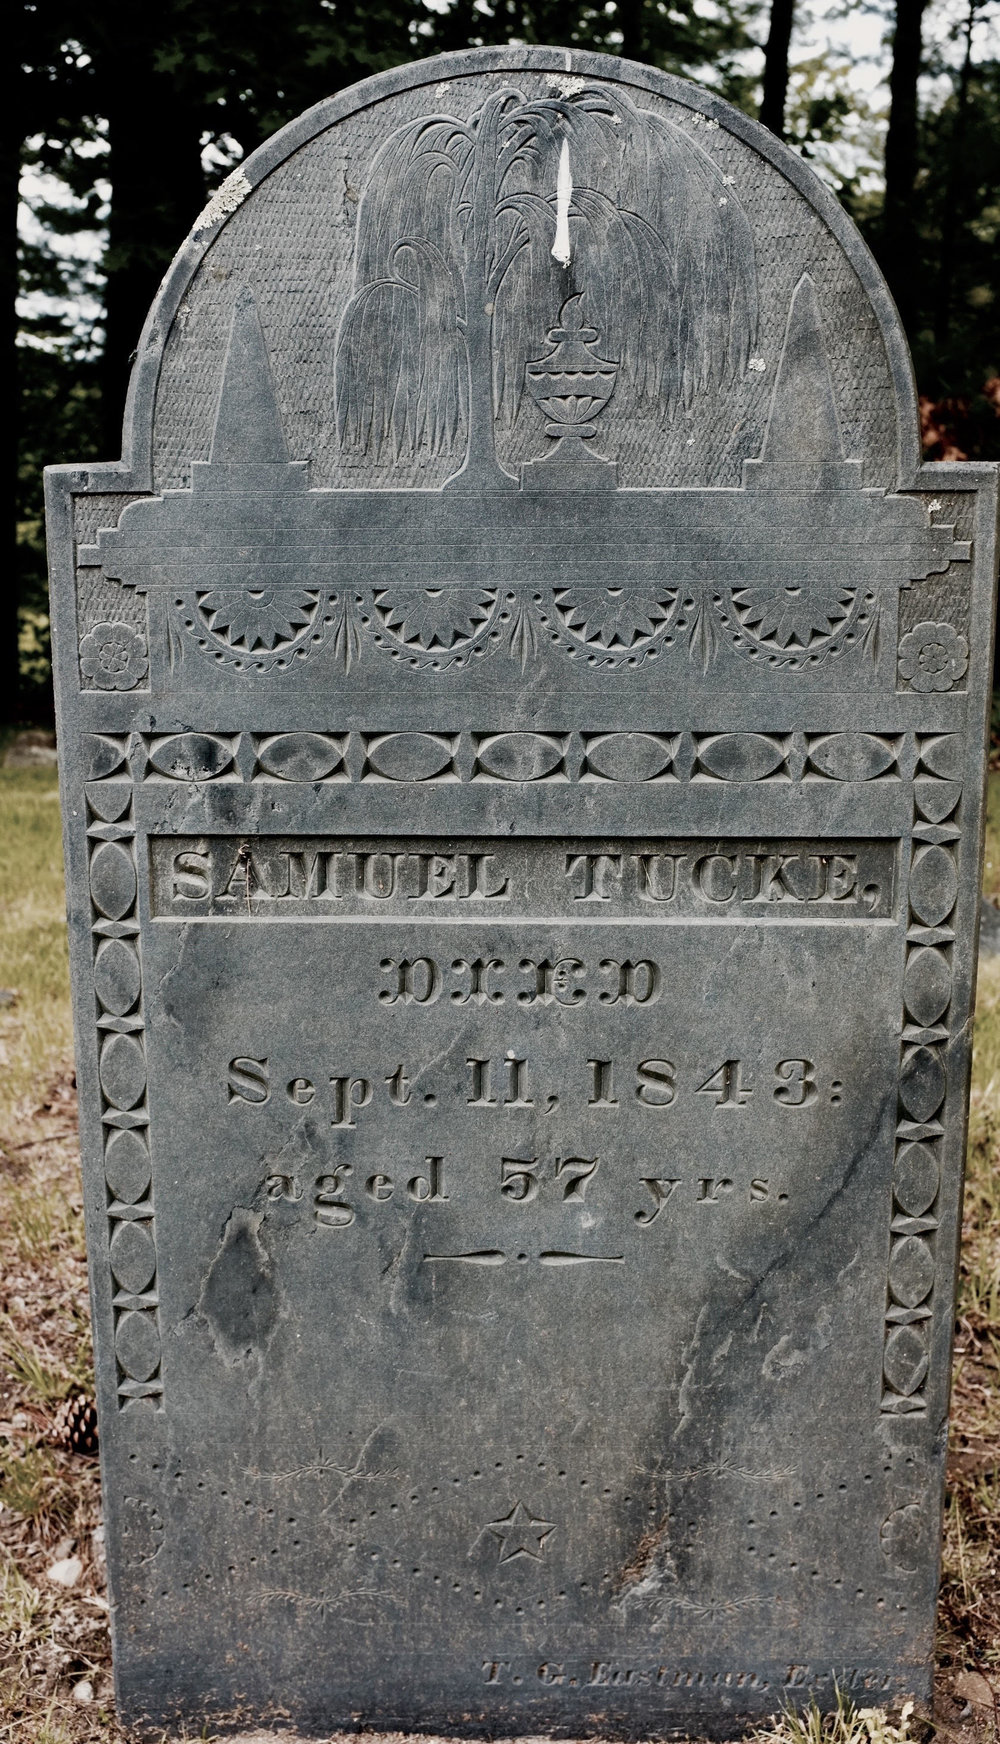 Samuel Tucke's stone of 1843 is of slate, the stonecutter's name is inscribed at the bottom and the urn and weeping willow motifs are more sophisticated than the primitive winged head of the early stones.